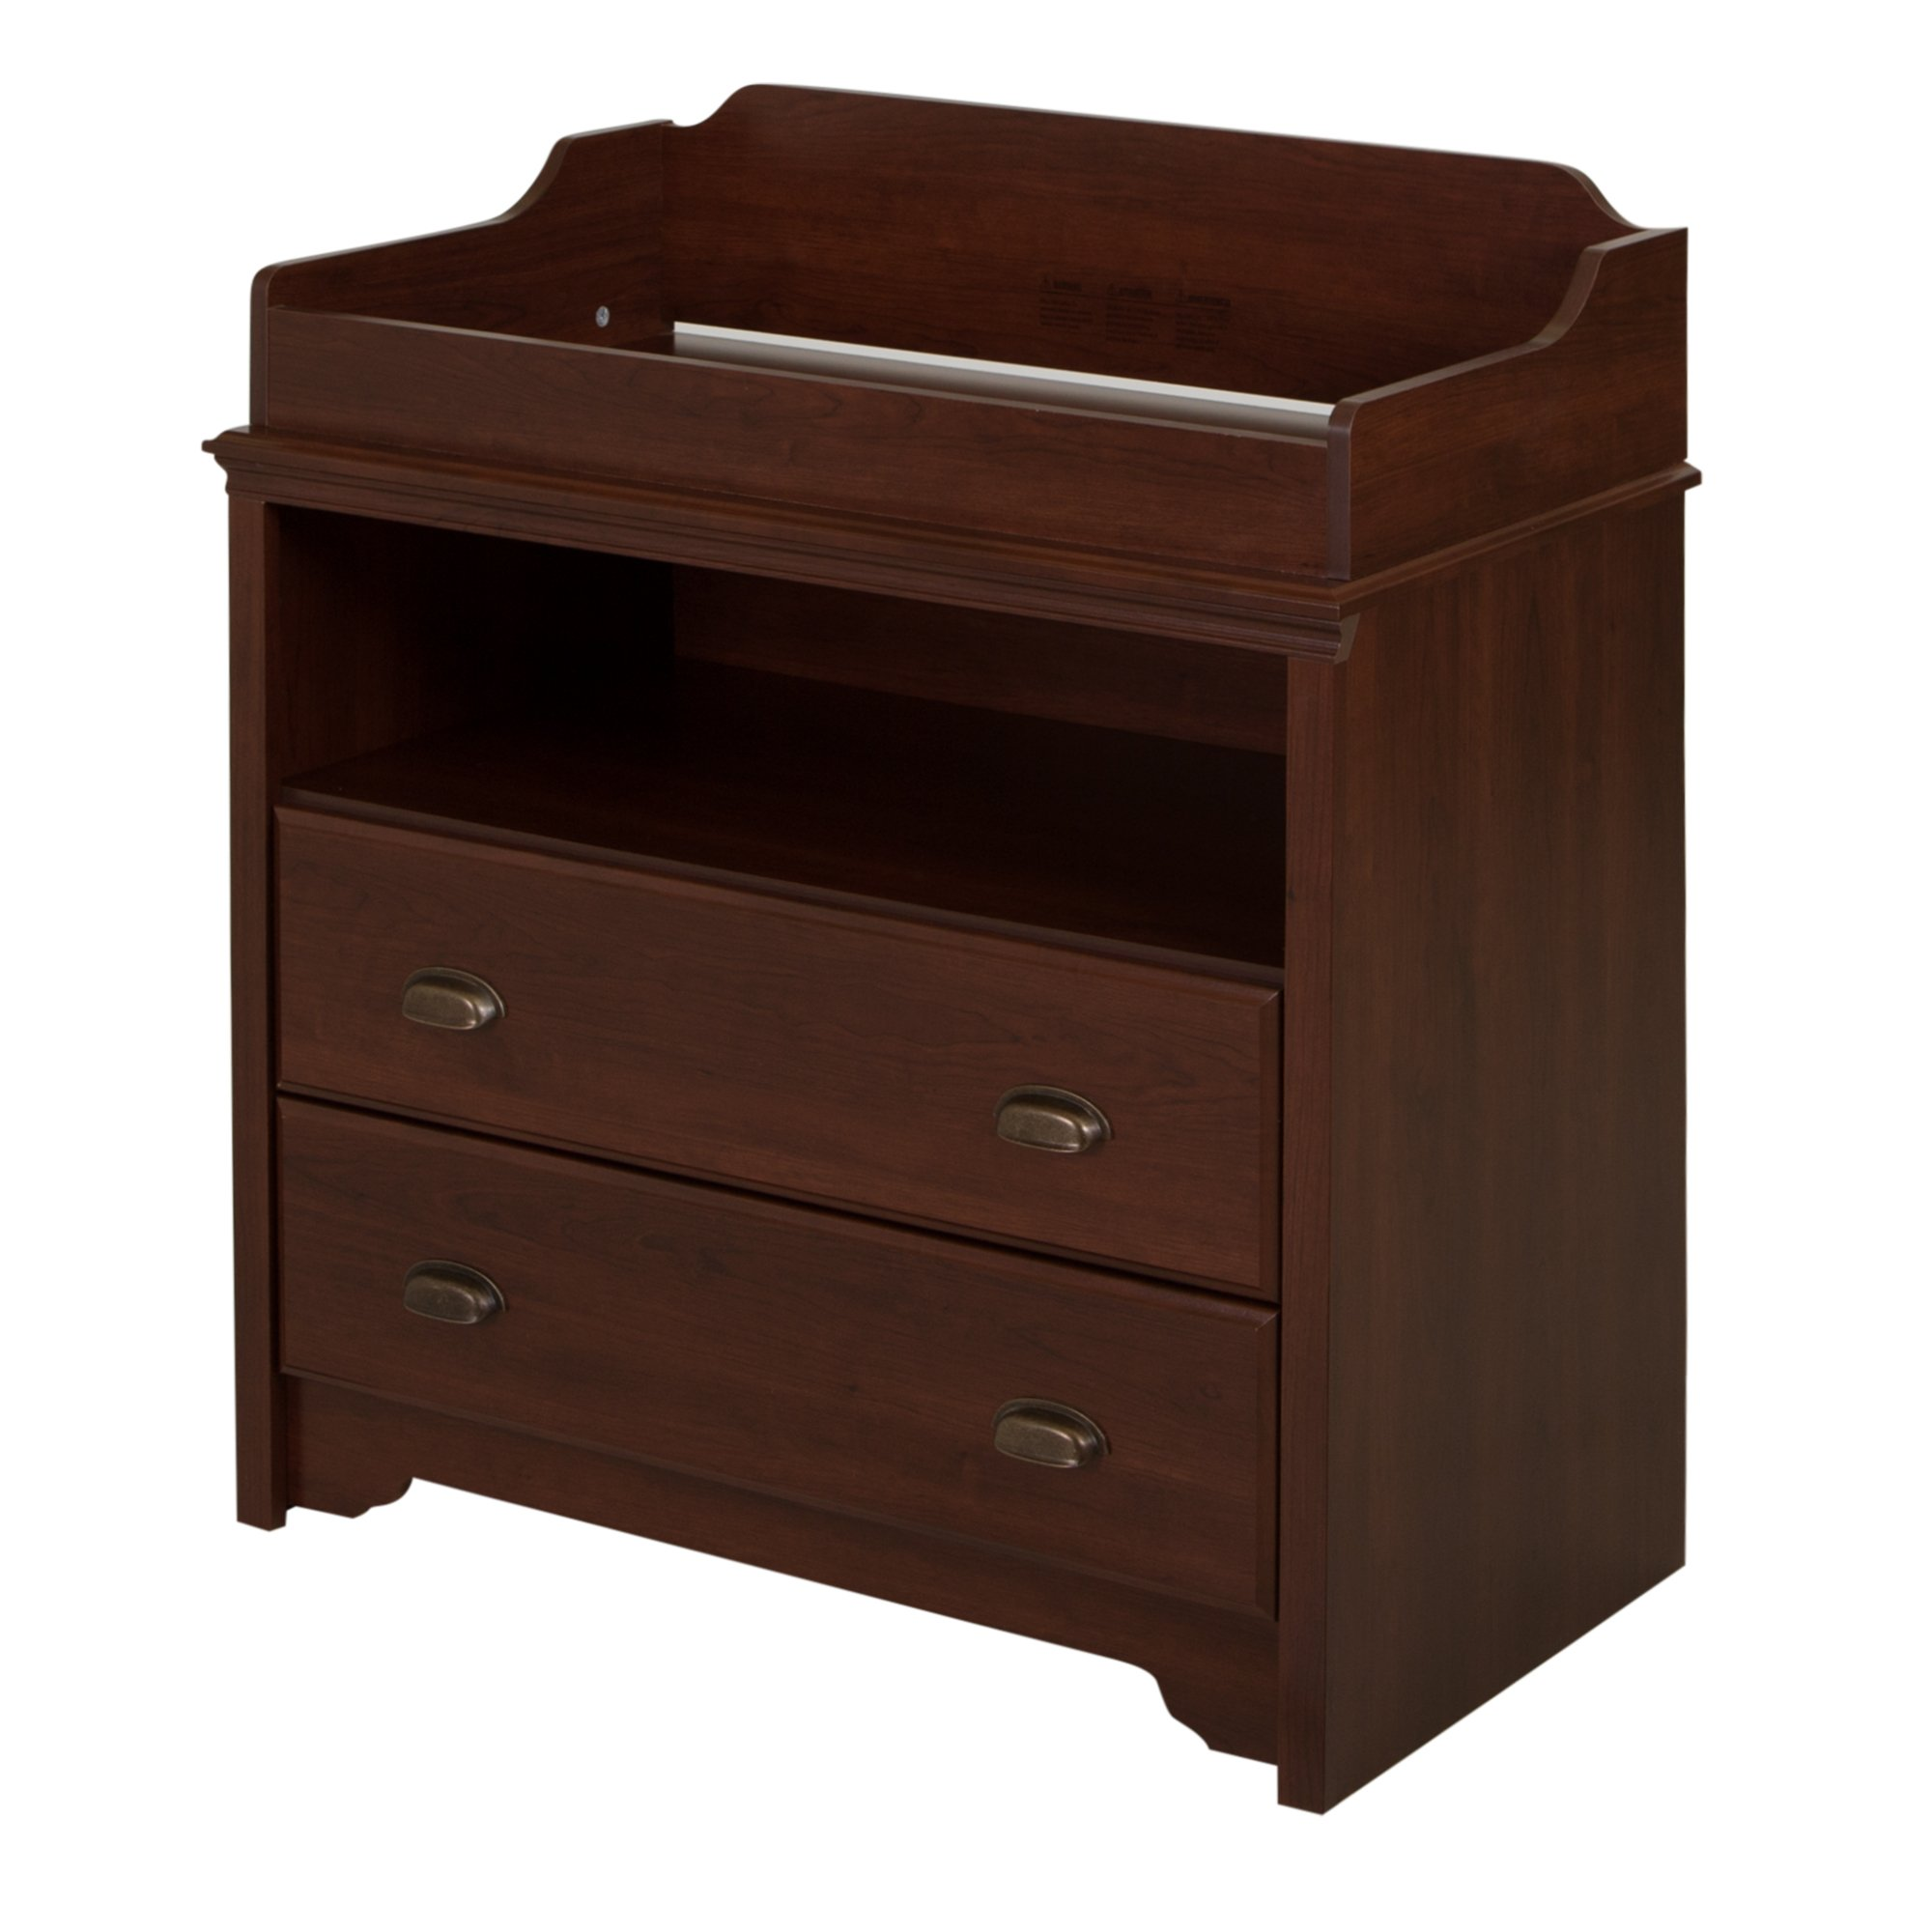 South Shore Fundy Tide Changing Table, Royal Cherry